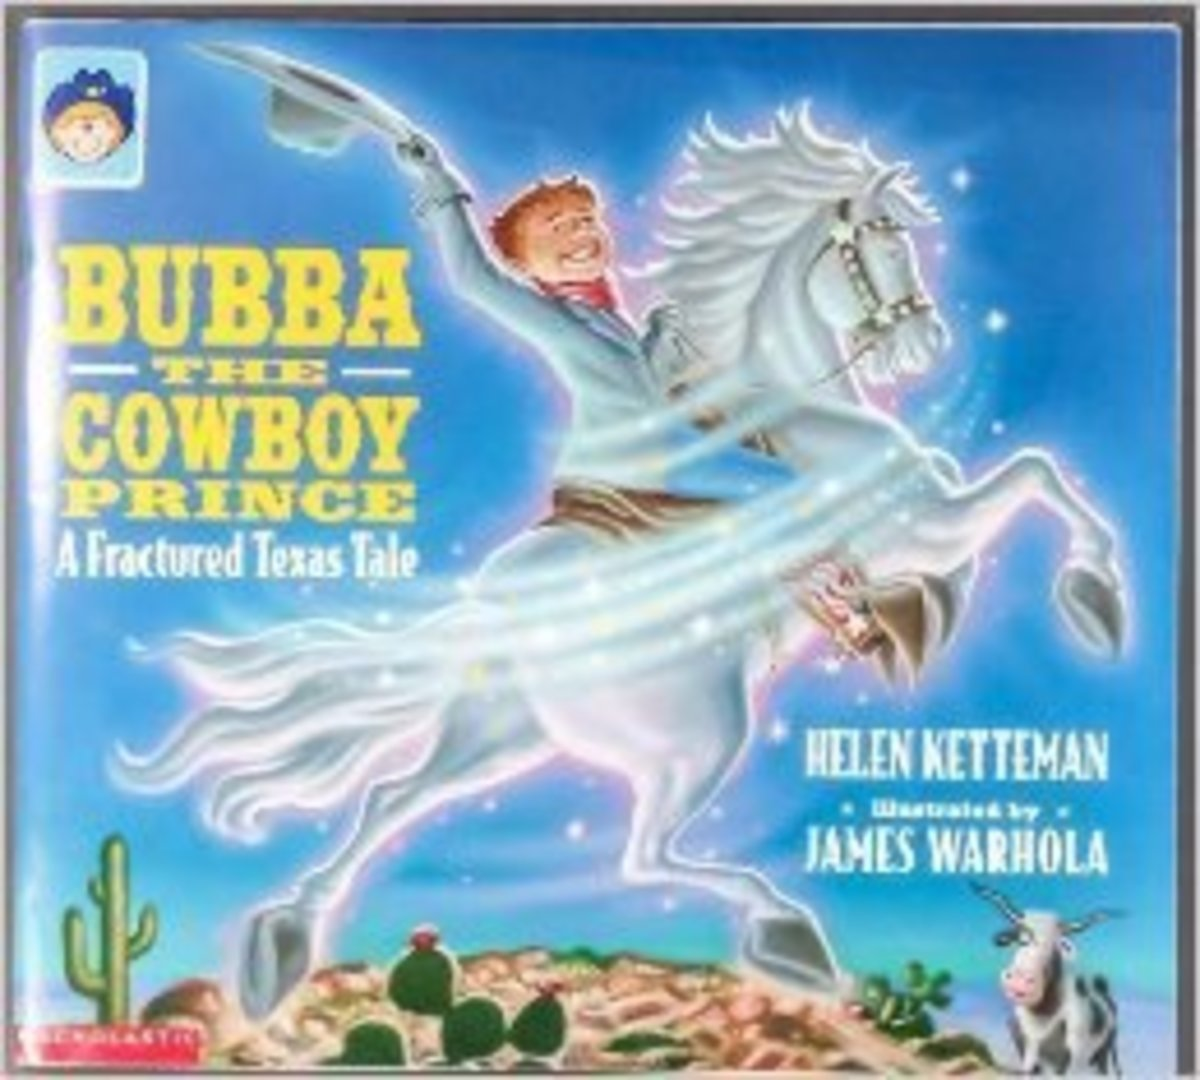 Bubba The Cowboy Prince by Helen Ketteman - Book images are from amazon.com.